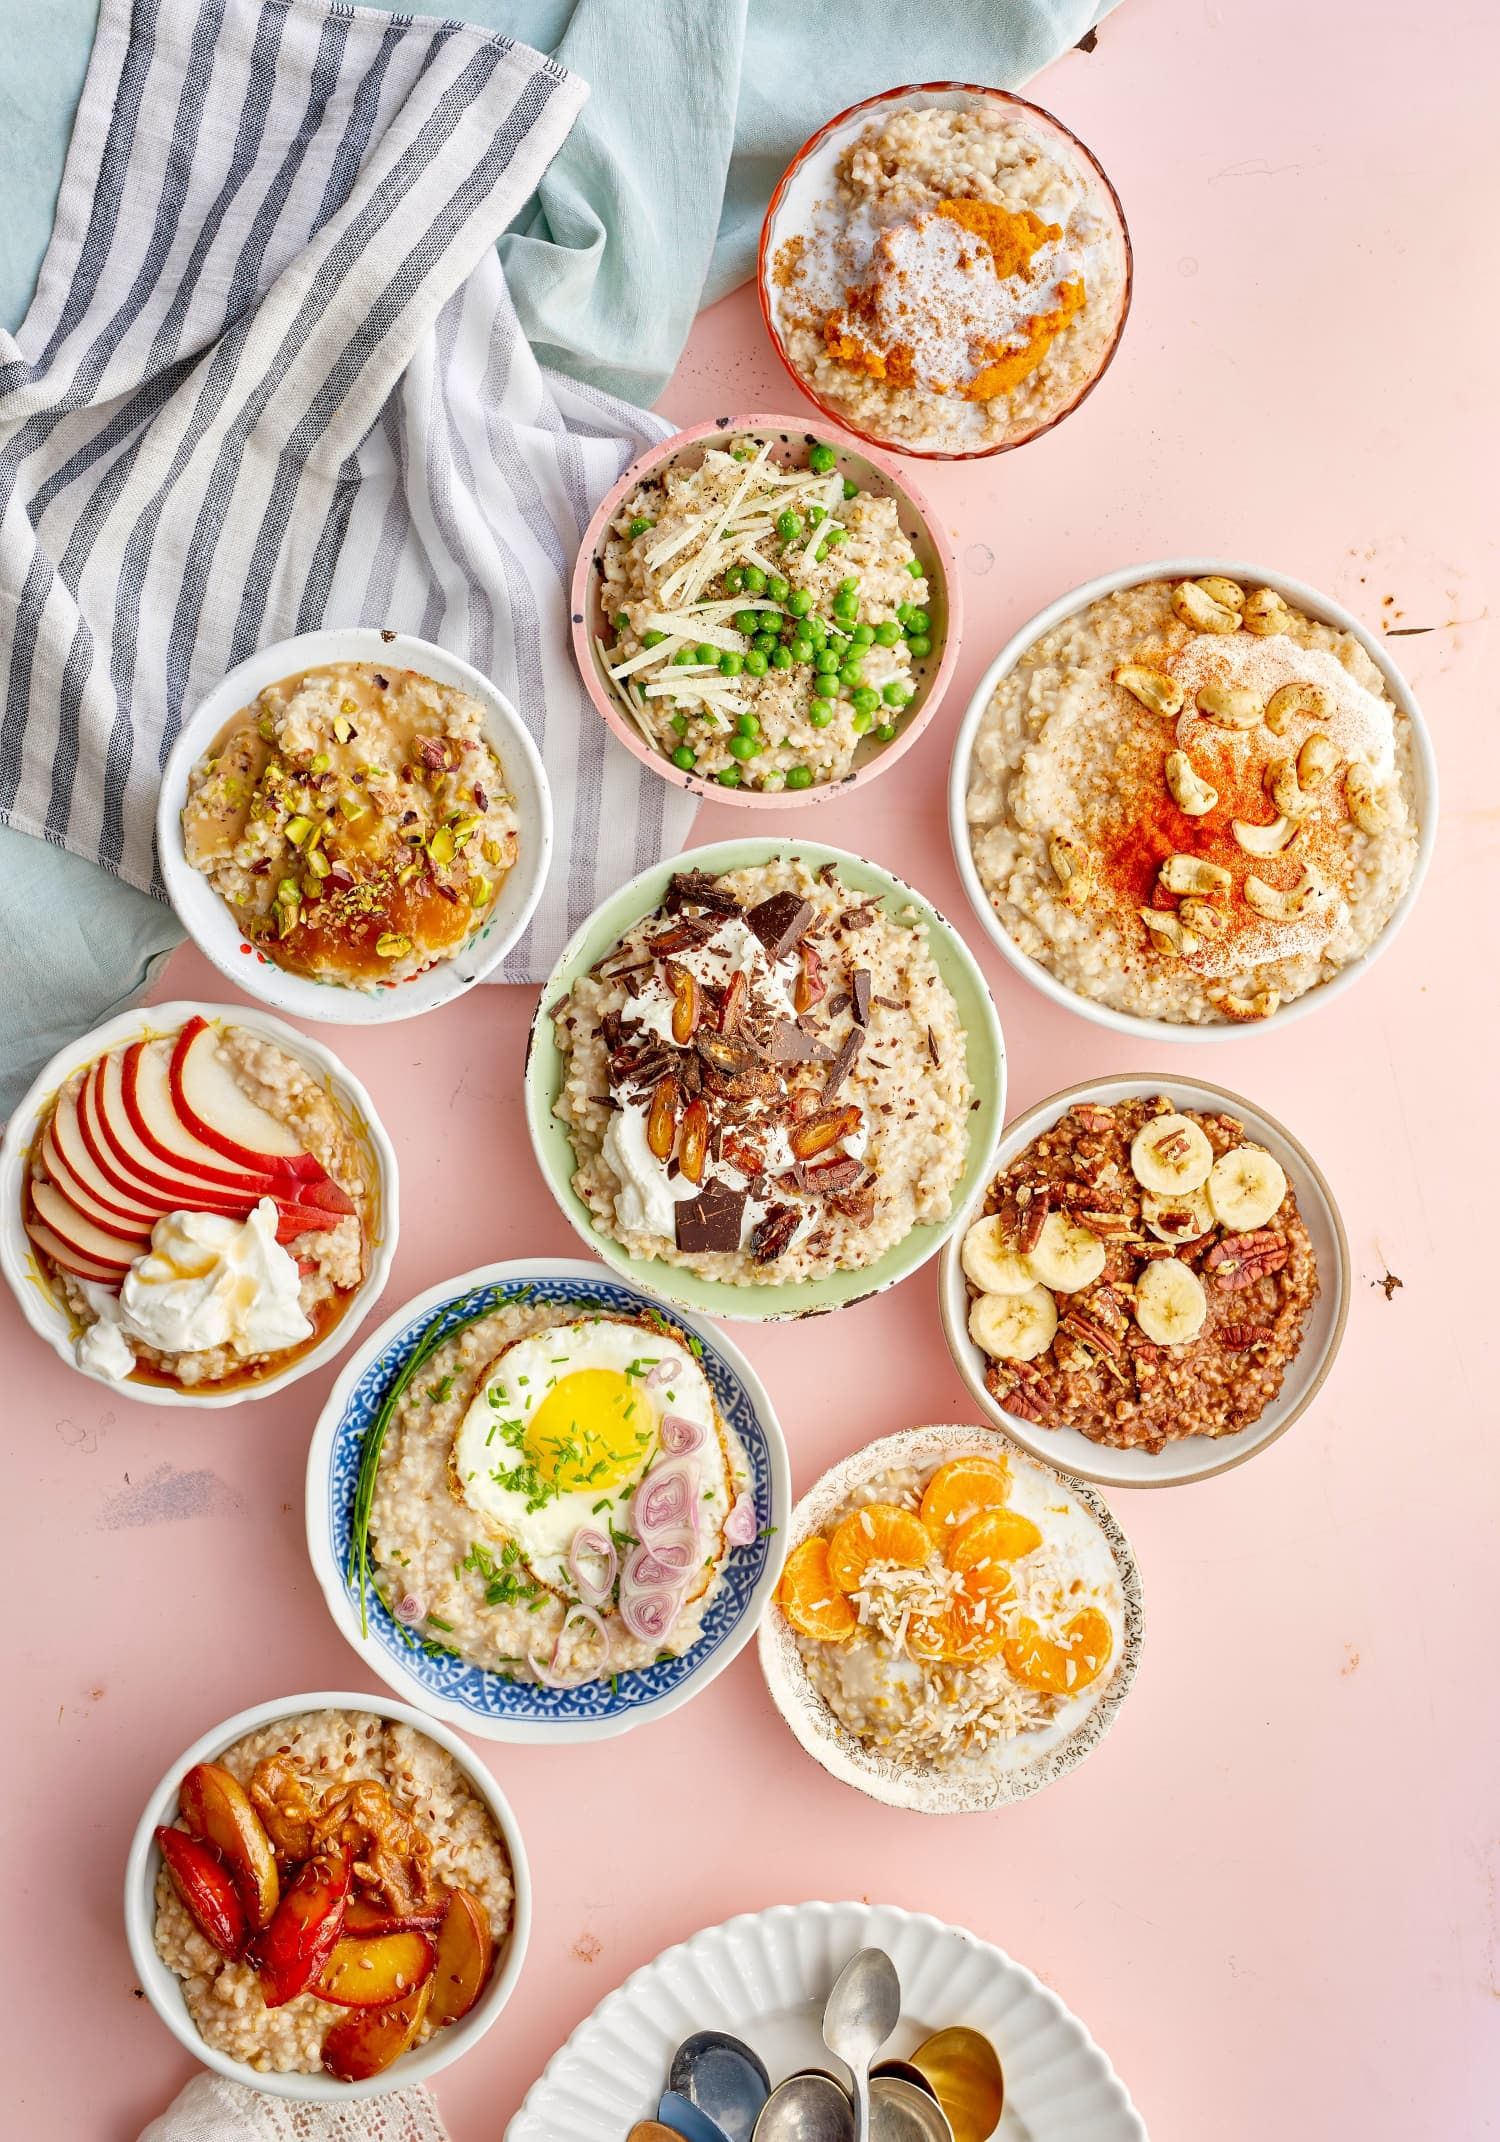 10 Sweet & Savory Ways to Top Your Morning Oatmeal